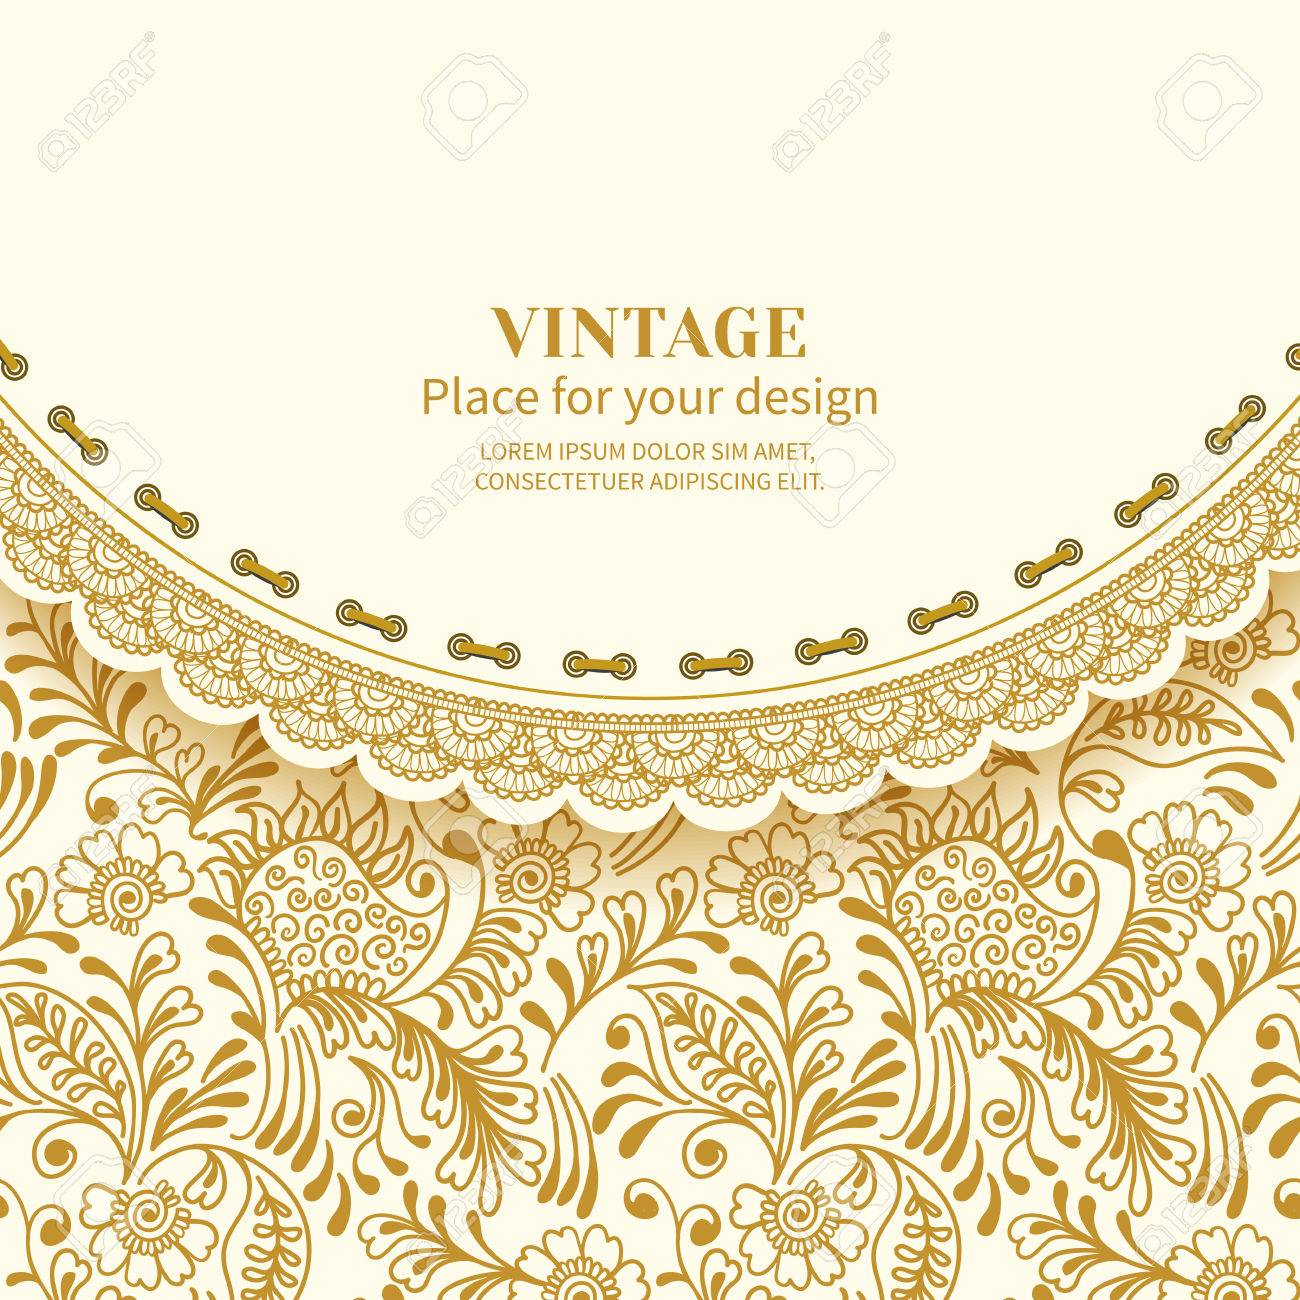 Invitation card or greetingame with lace on vintage background invitation card or greetingame with lace on vintage background seamless with golden mehndi pattern stopboris Images